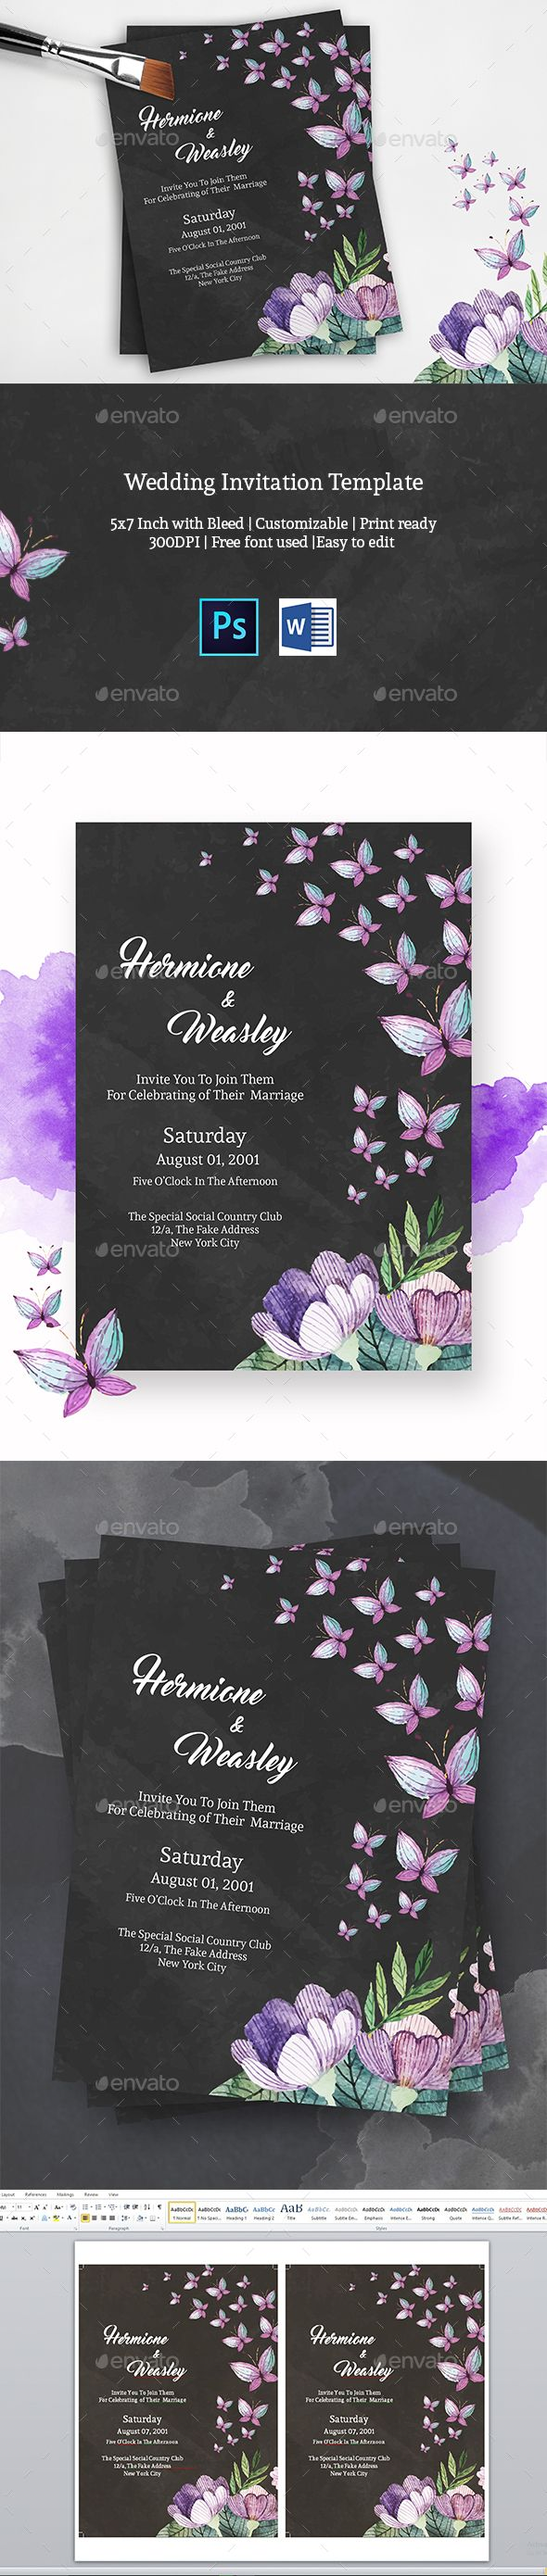 free wedding invitation psd%0A Wedding Invitation by quazisadiya Features Photoshop and Word file    with  bleed Editable Free Fonts Used High resolution  CMYK Print Ready format